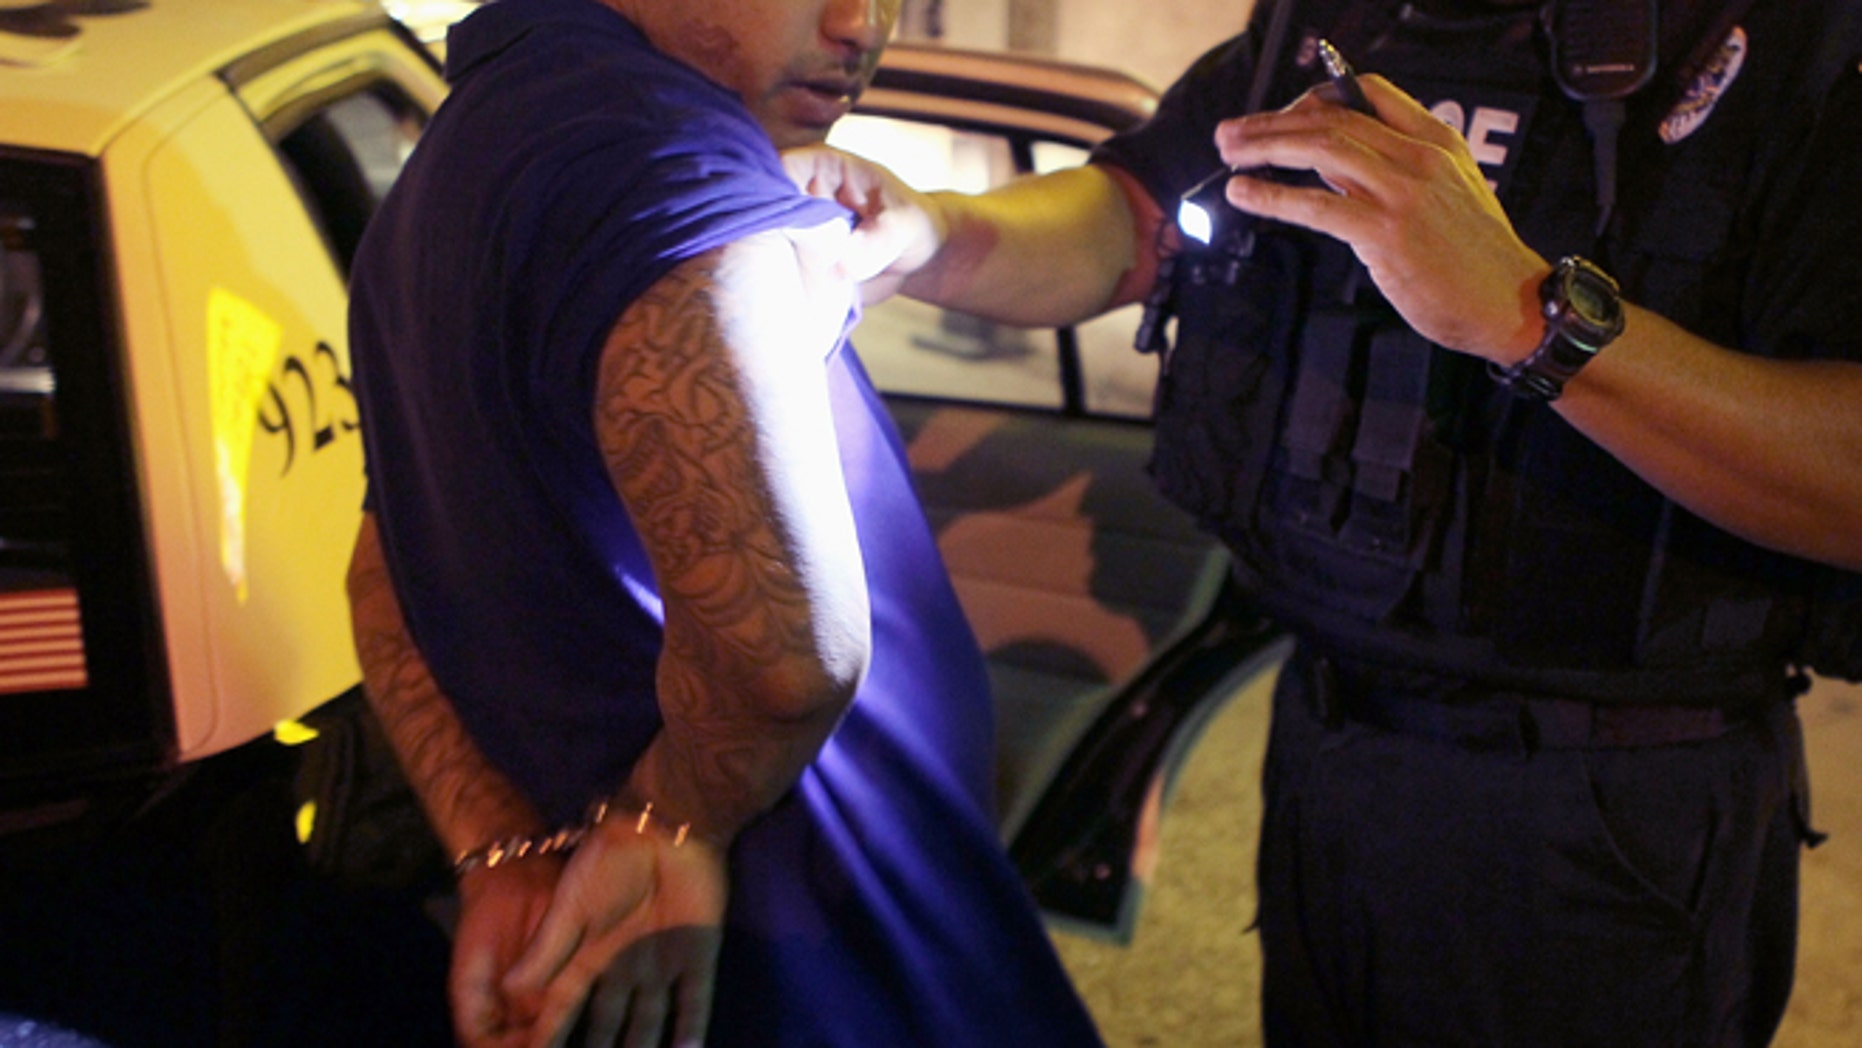 """TUCSON, AZ - JUNE 03:  Leon Gutierrez of the Tucson Police Department's Gang Tactical Unit looks over a suspect's tattoos for signs of gang affiliation following an altercation outside a currency exchange on June 3, 2010 in Tucson, Arizona. The Tucson Police Department is currently gearing up to begin training its officers on the implementation of the state's controversial new immigration law SB 1070. Among other things the new law makes it a state crime to be an """"unauthorized alien"""" or to knowingly harbor, hire or transport an unauthorized alien. A Tucson police officer was one of the first to file suit in federal court challenging the new law.  (Photo by Scott Olson/Getty Images)"""